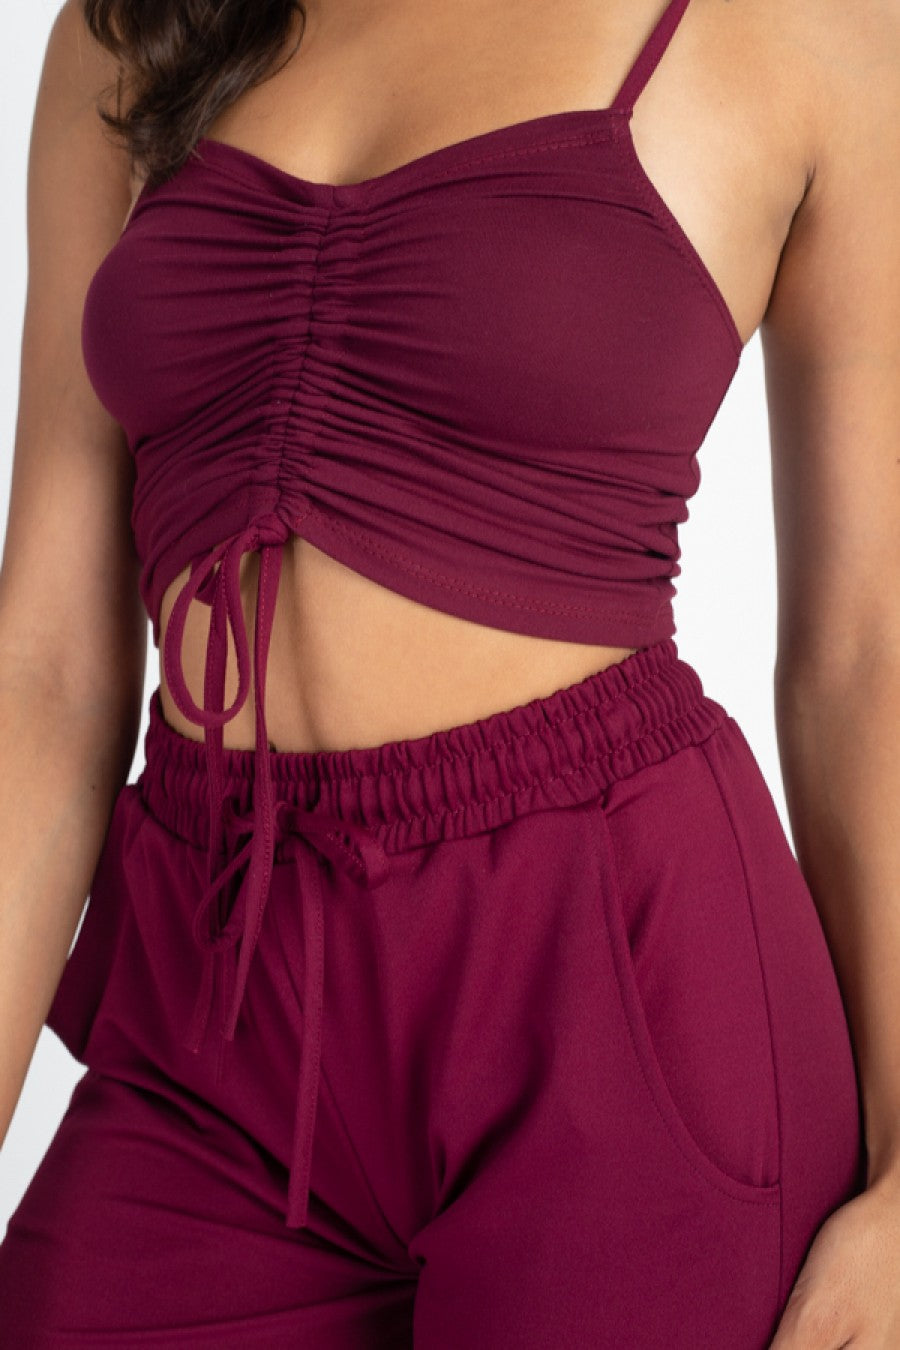 Women's Camisole Spaghetti Strap Shirred Center String Solid Crop Top